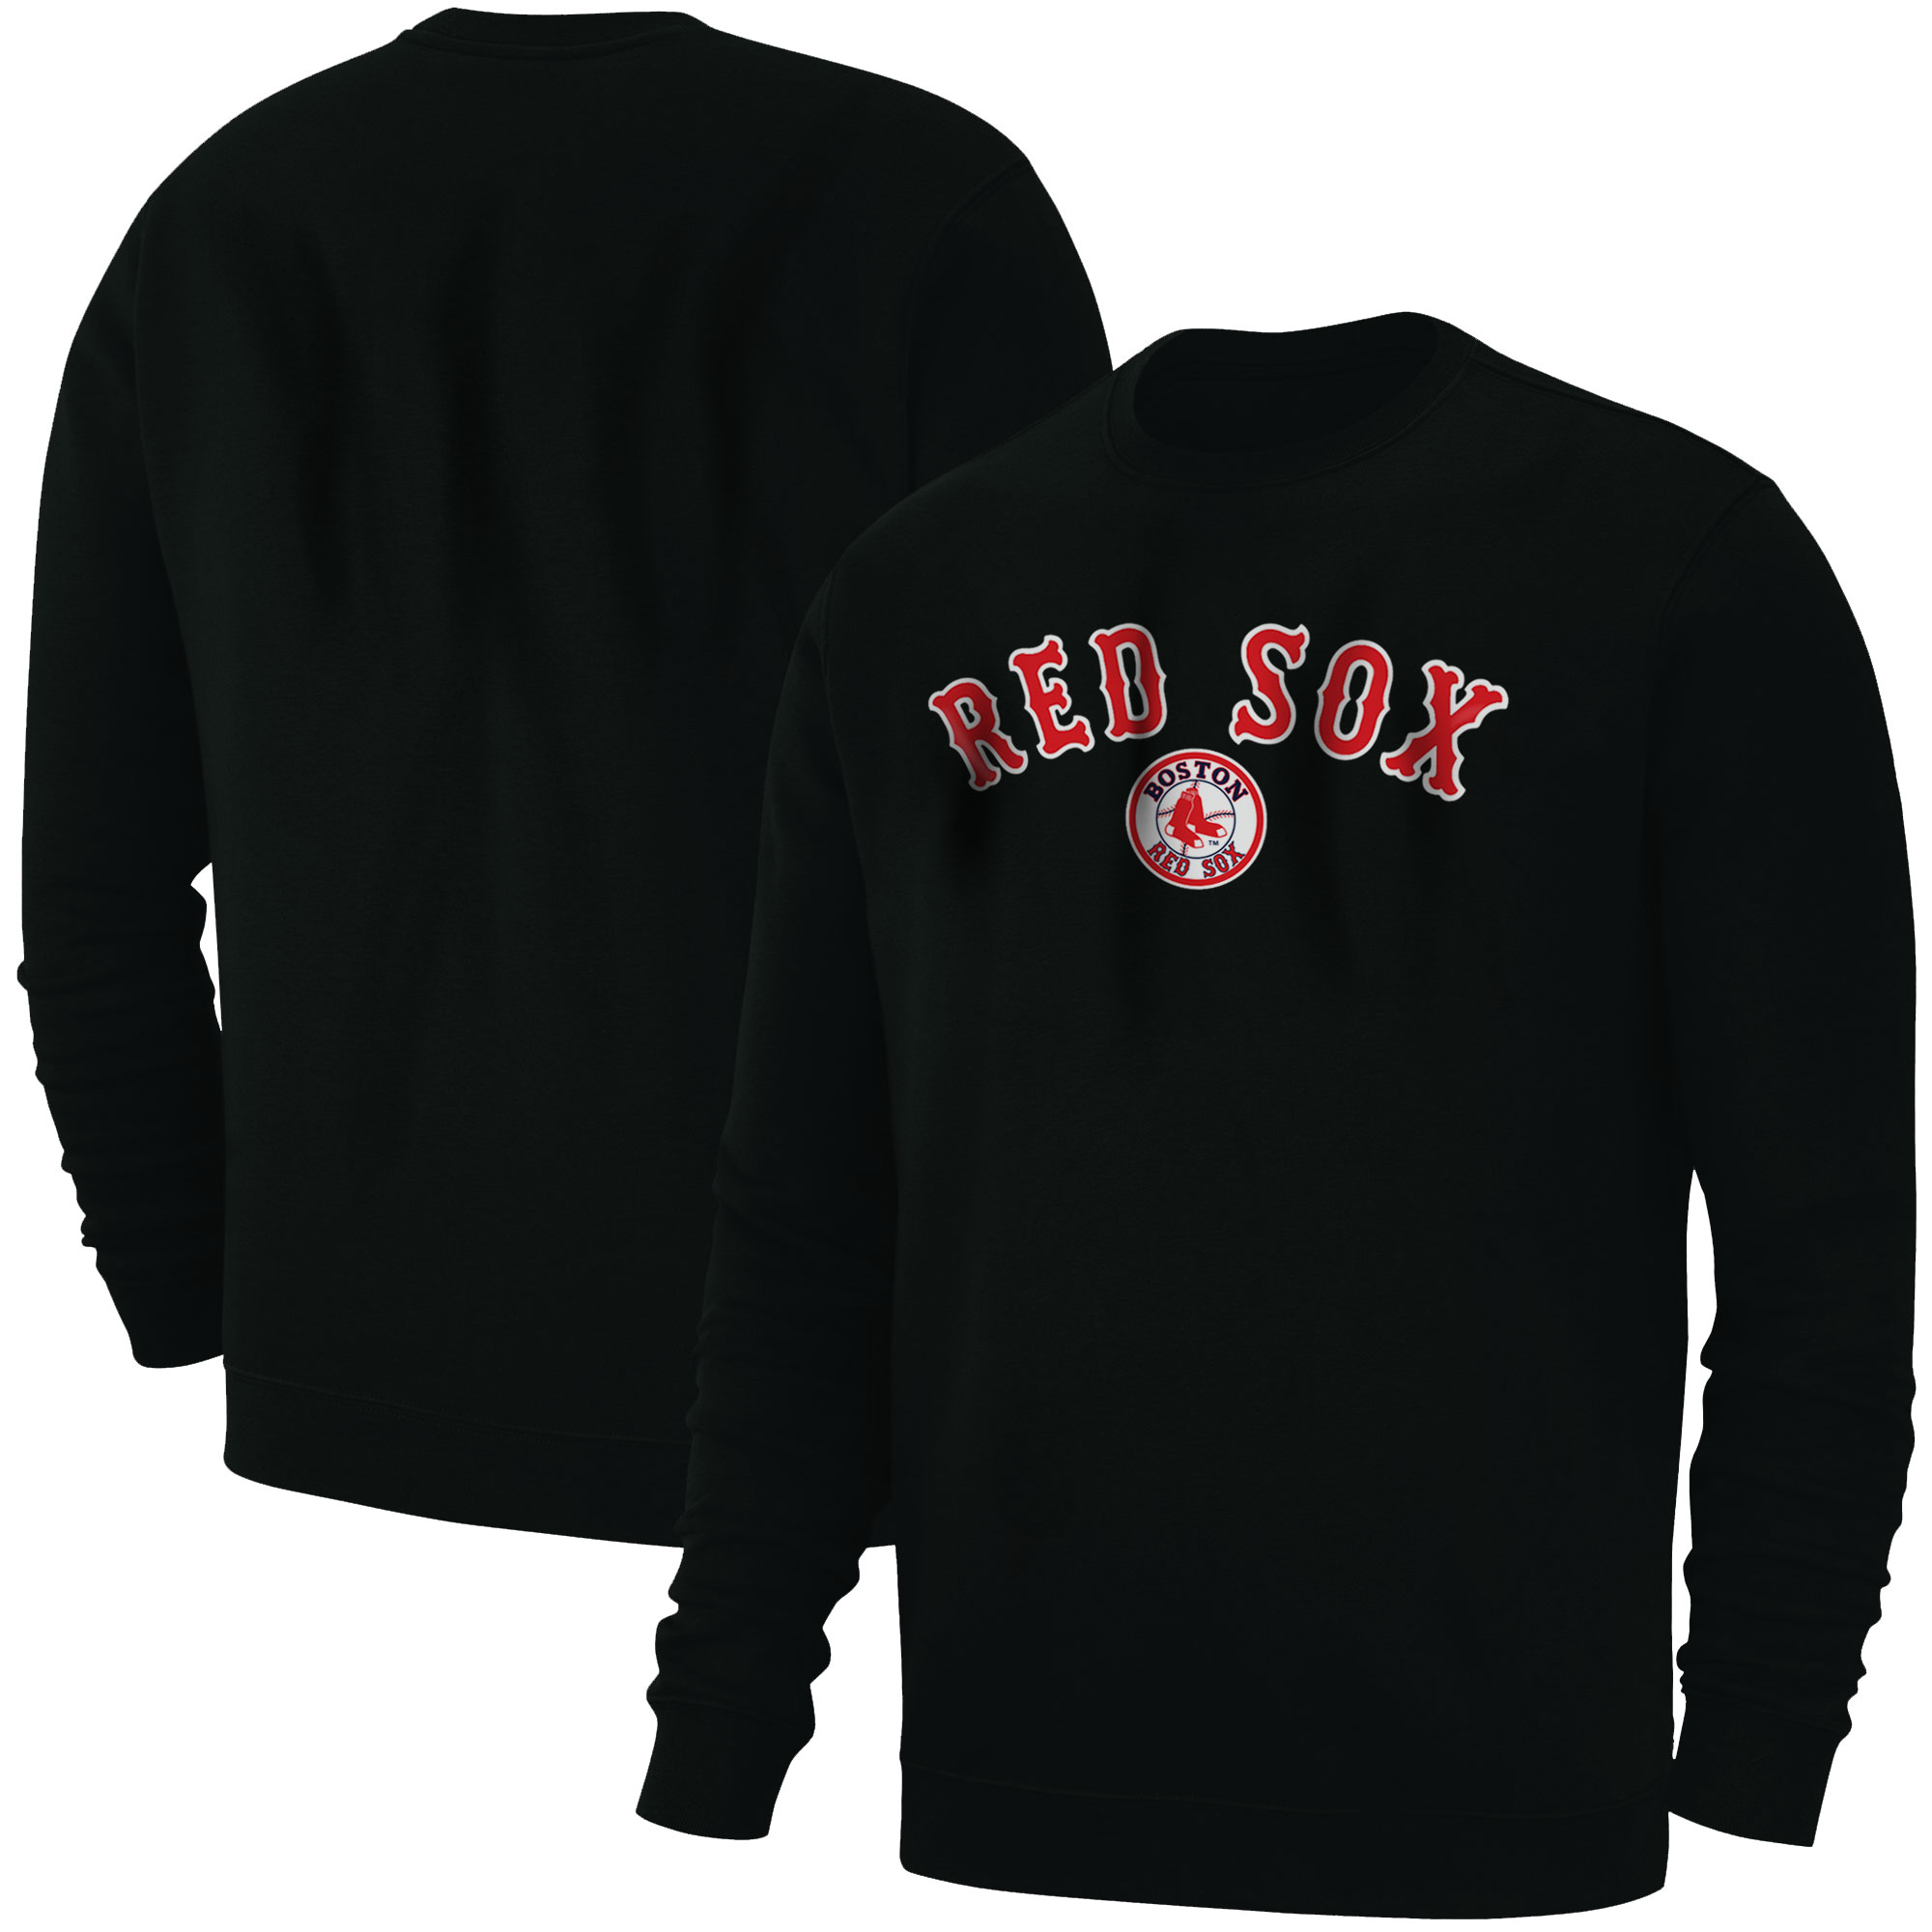 MLB Red Sox Basic (BSC-BLU-490-RED-SOX)